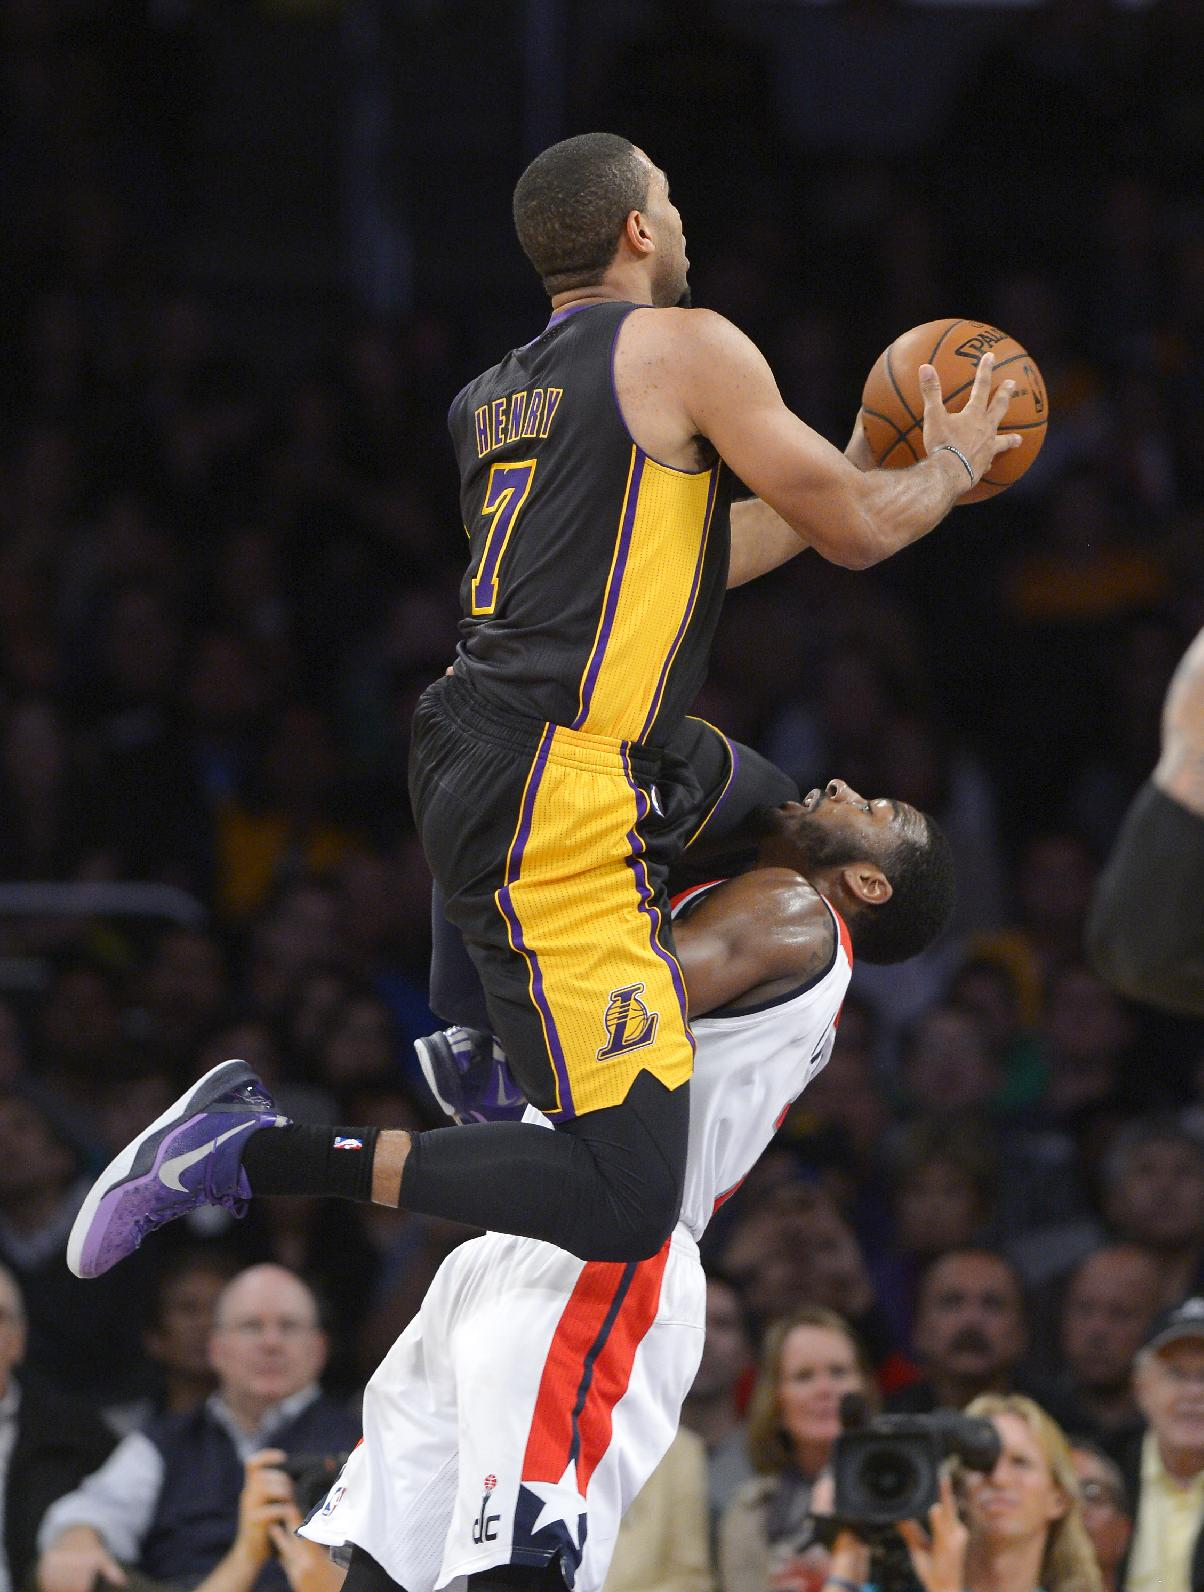 Los Angeles Lakers forward Xavier Henry, left, goes up for a shot as Washington Wizards guard John Wall defends during the second half of an NBA basketball game, Friday, March 21, 2014, in Los Angeles. The Wizards won 117-107